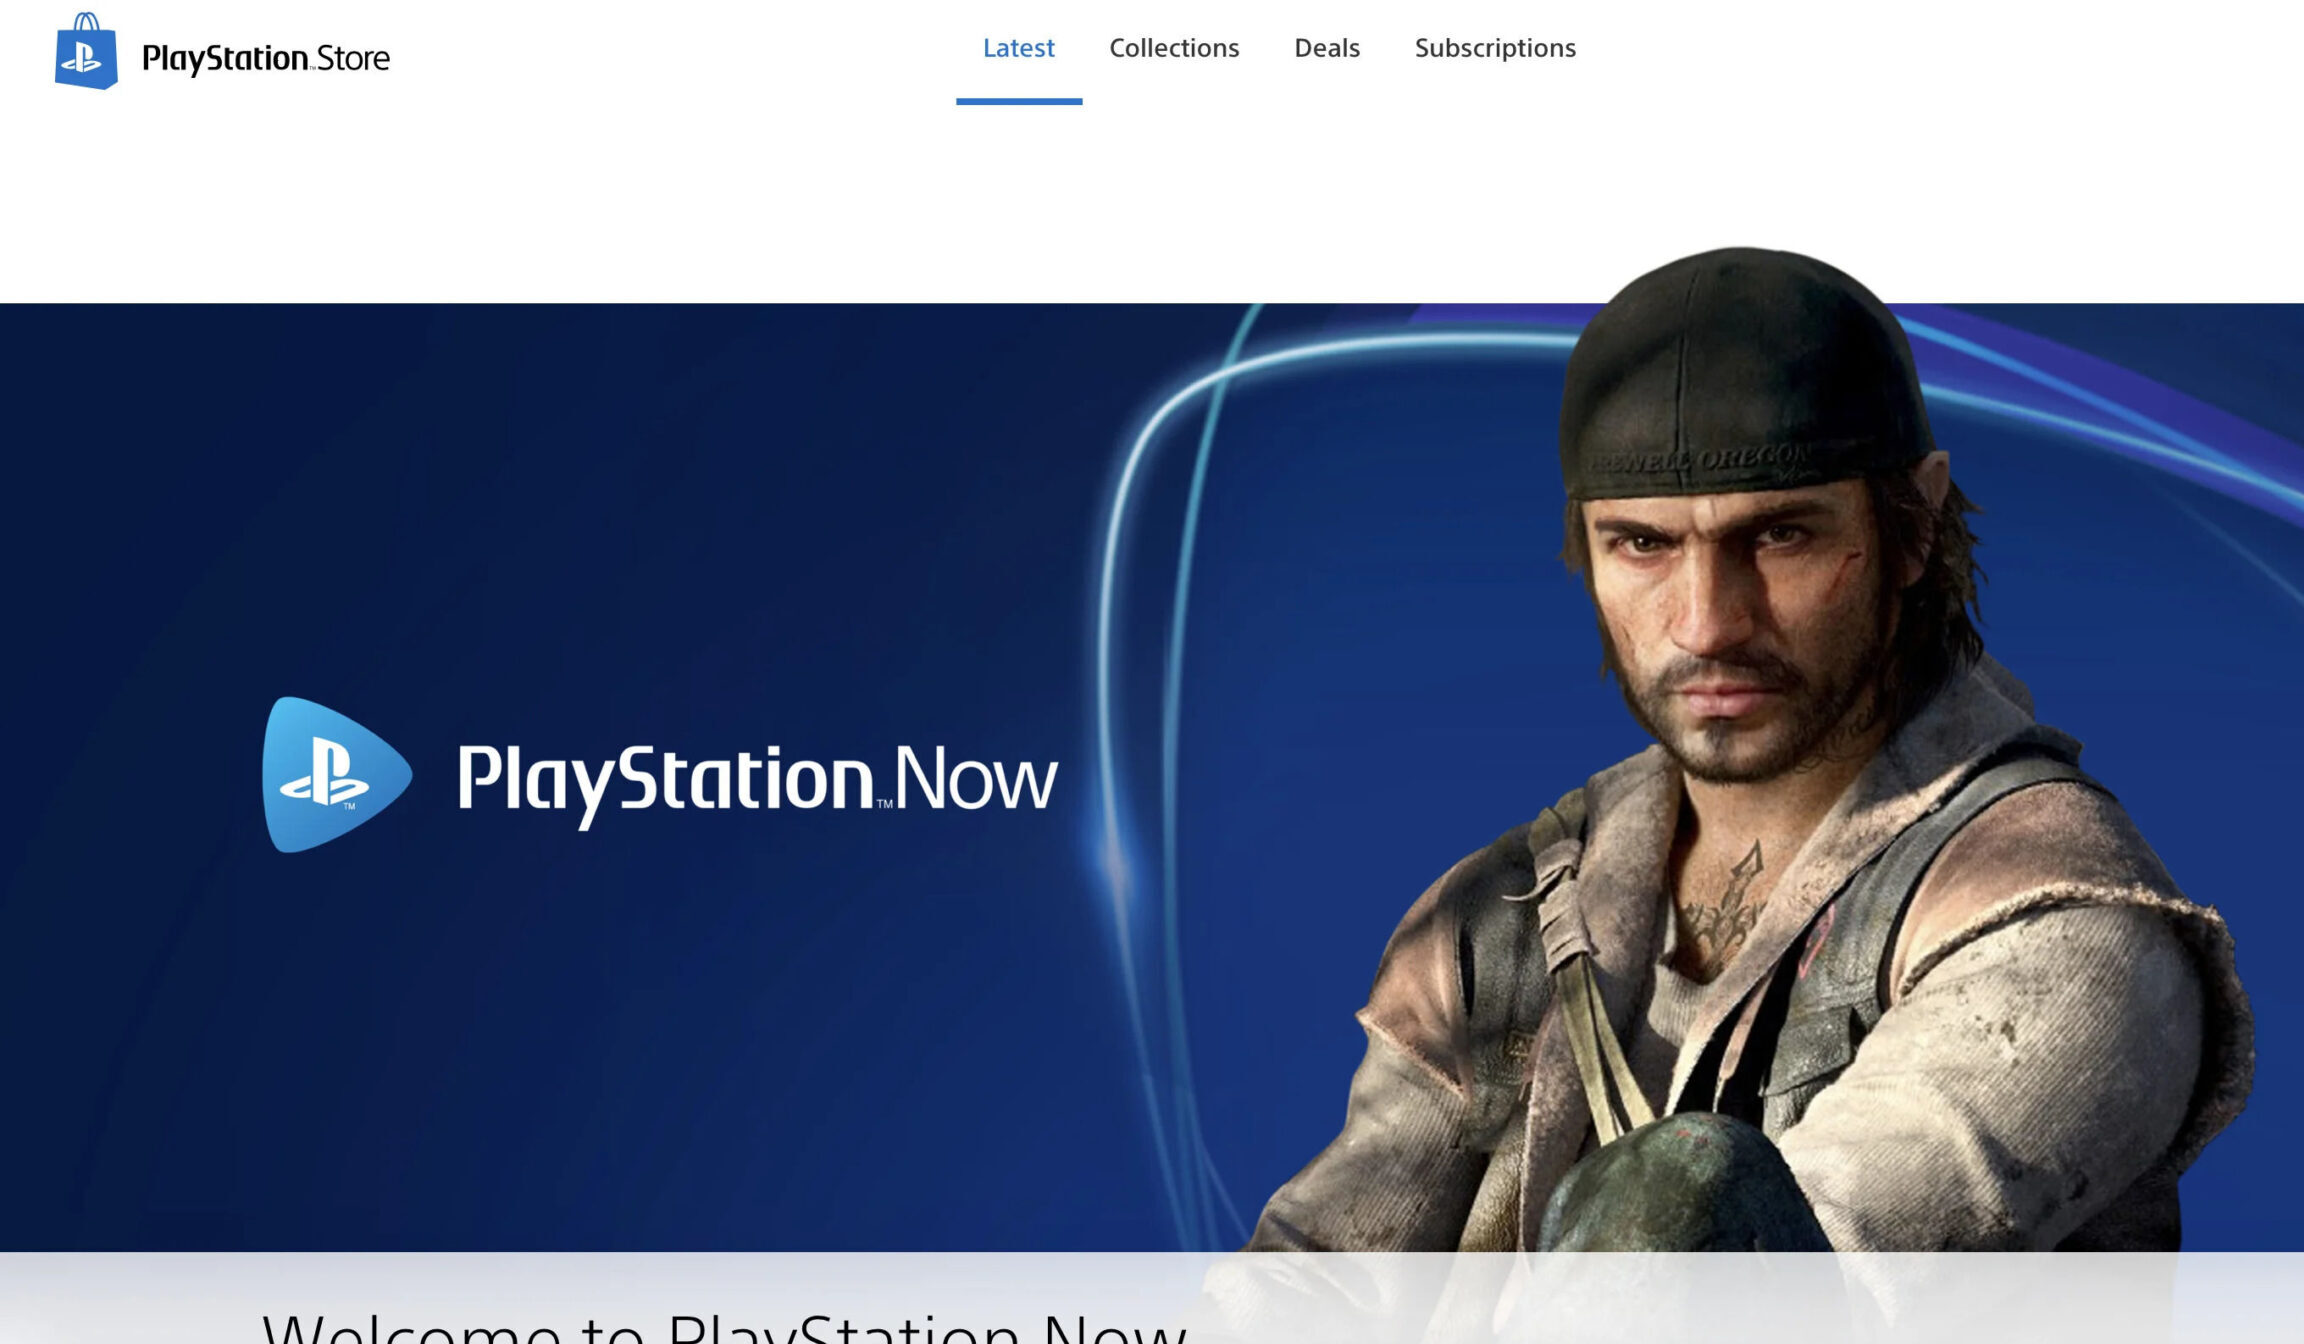 First Screenshots Shared from the New PlayStation Store